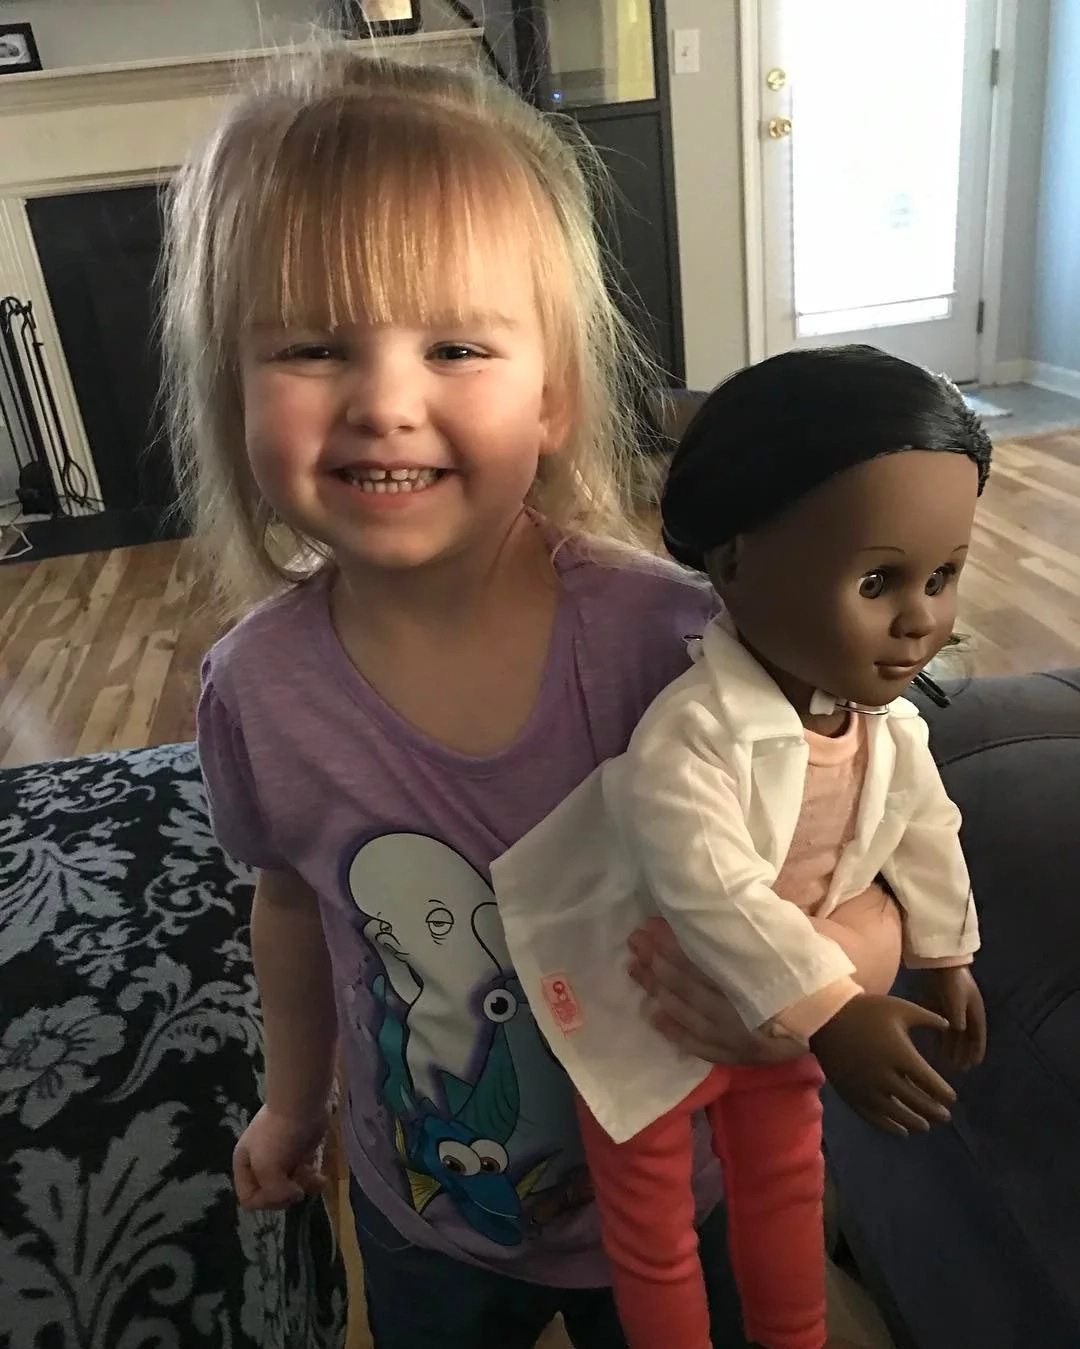 Girl, 2, explains why she prefers BLACK doll to white (photos)